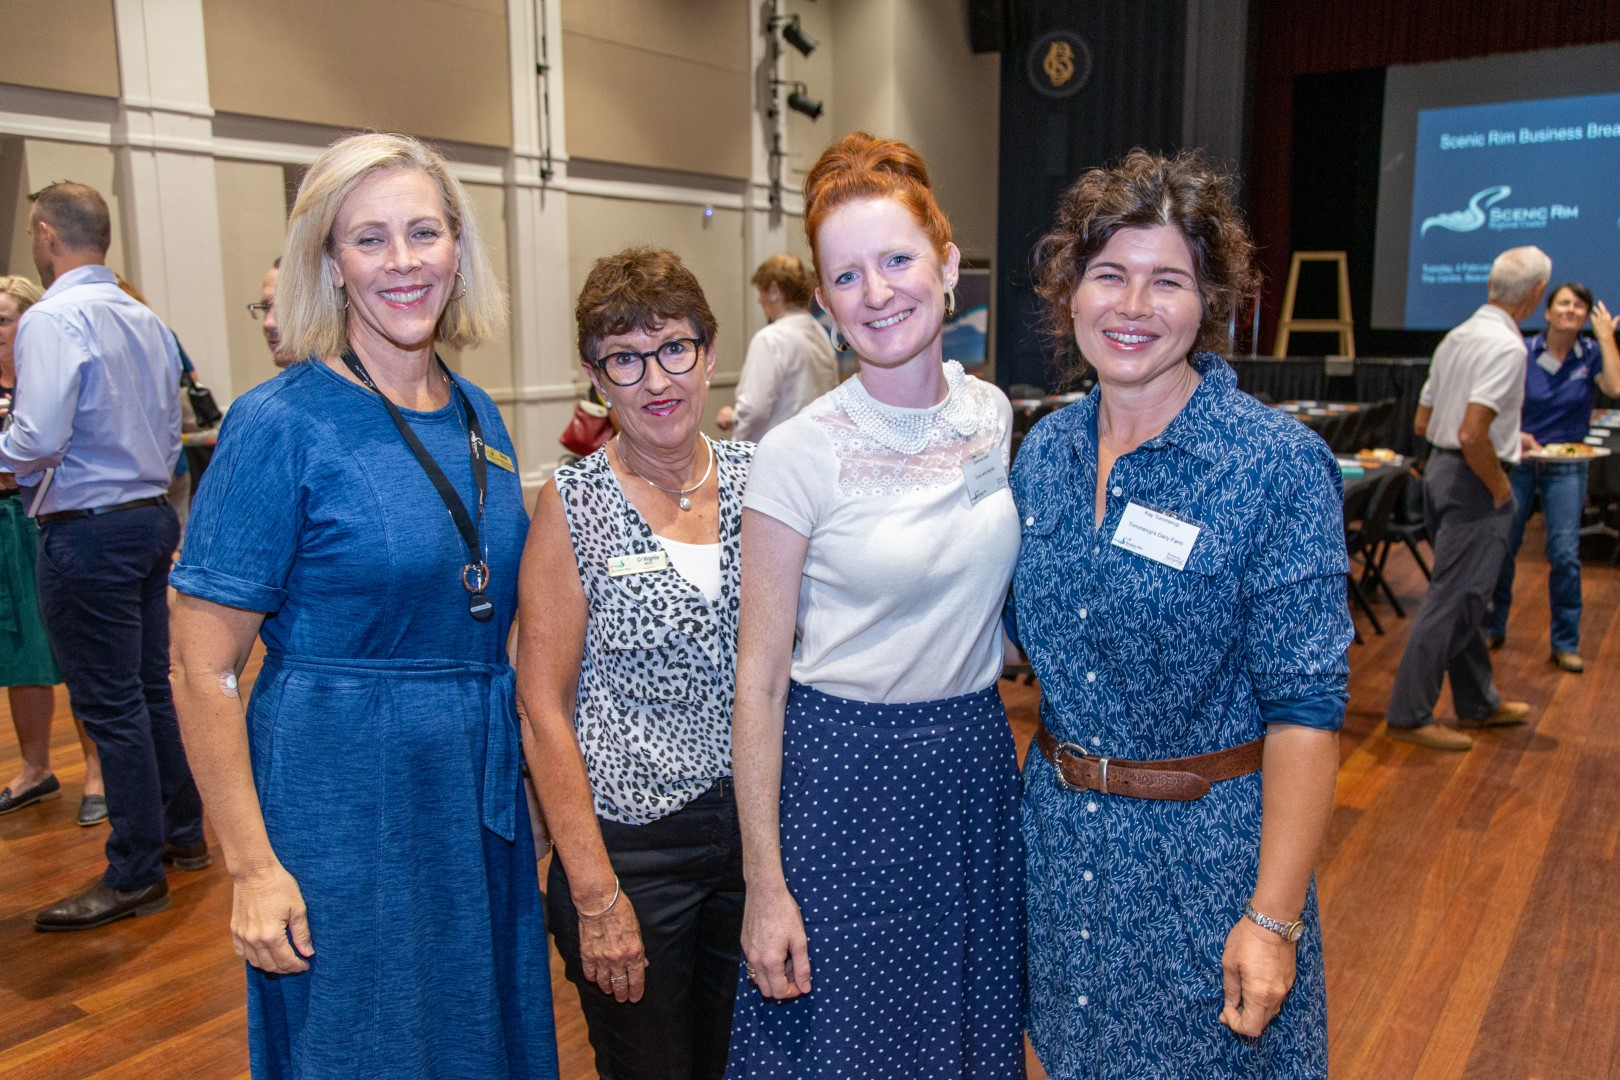 Brenda Walker, SRRC, Cr Virginia West, Gemma Irwin, Coco & Myrtle and Kay Tommerup of Tommerup's Dairy Farm at the February business breakfast.